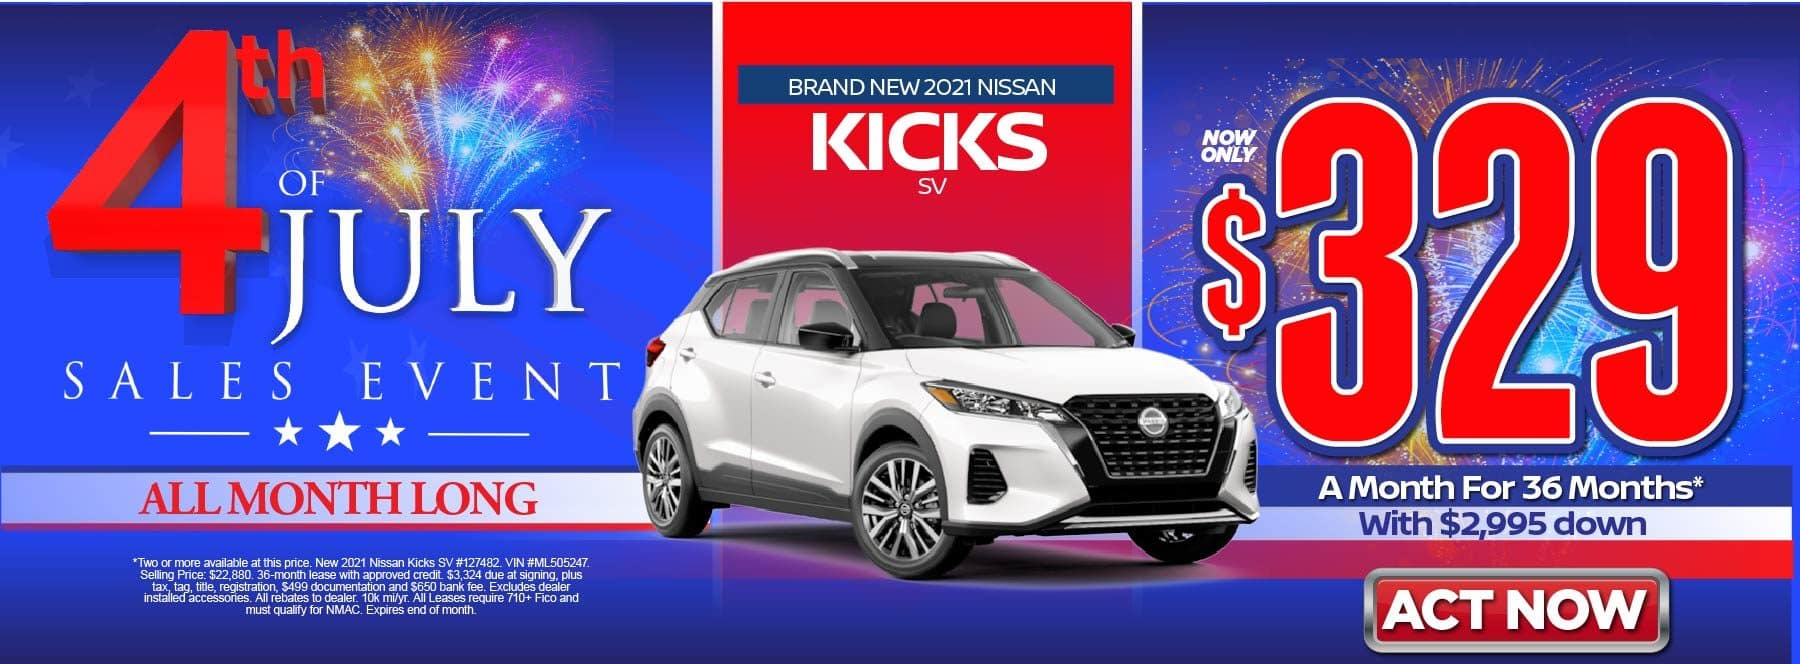 New 2021 Nissan Kicks S – Lease for $329/mo for 36 months with $2,995 Down* Act now.